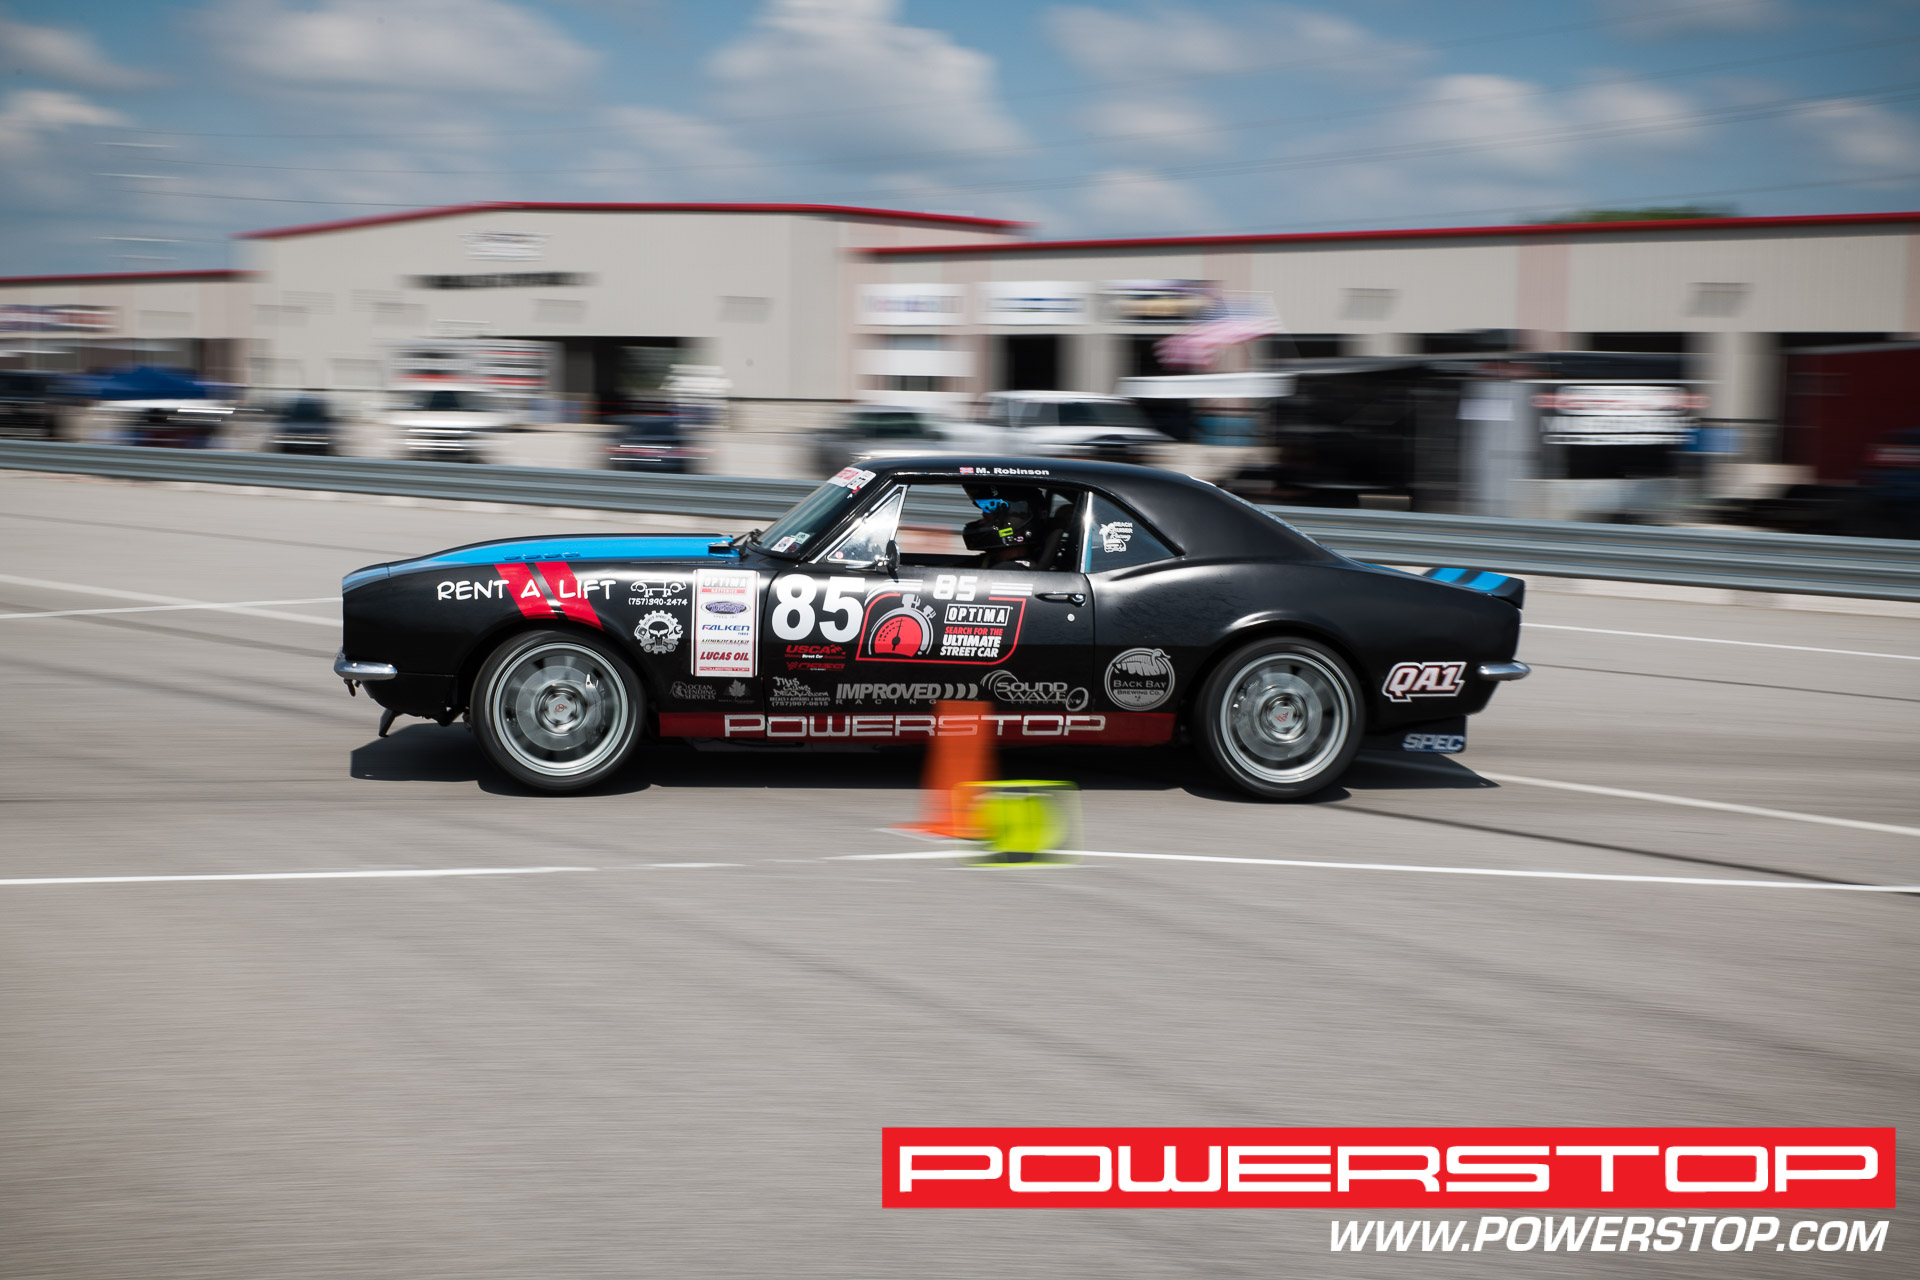 Mills Robinson PowerStop sponsored Team Driver at an OPTIMA Search For The Ultimate Streetcar challenge at NOLA